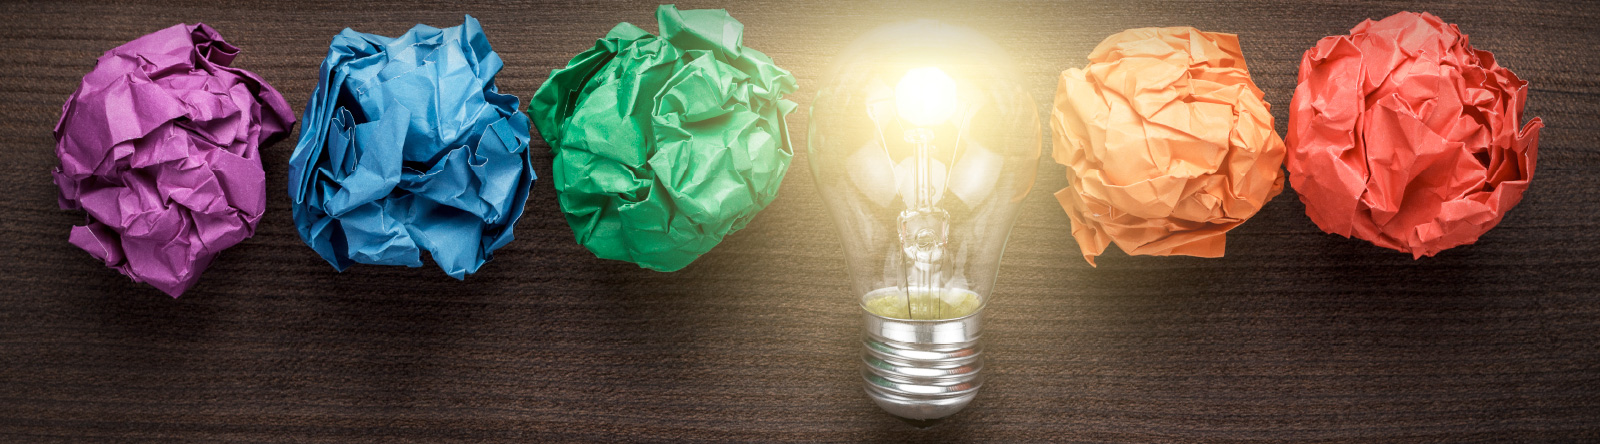 Lightbulb surrounded by crumpled paper